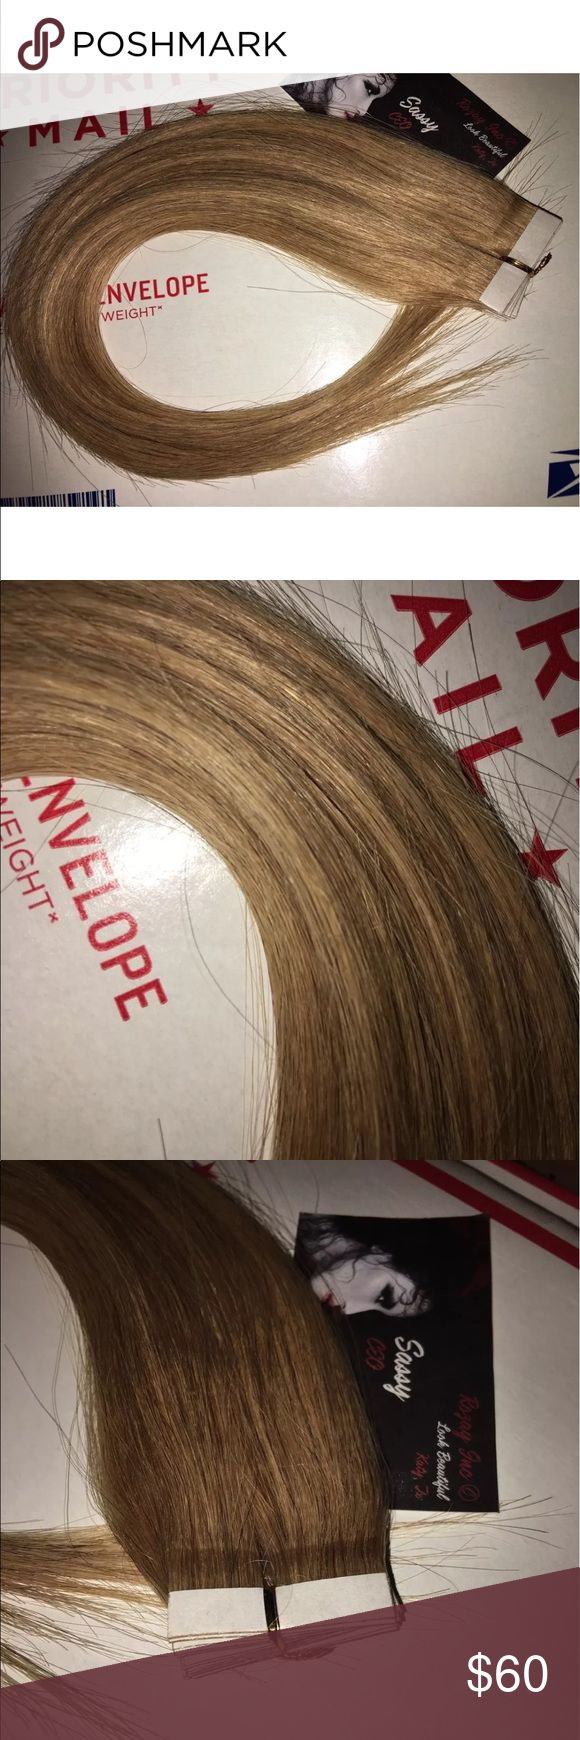 100%Authentic Rozay Remy Human Hair Tape Extension Hello you will receive same item as seen in photos 100% Authentic Rozay Remy Human Hair Tape Extension's (20) pieces color: 27  